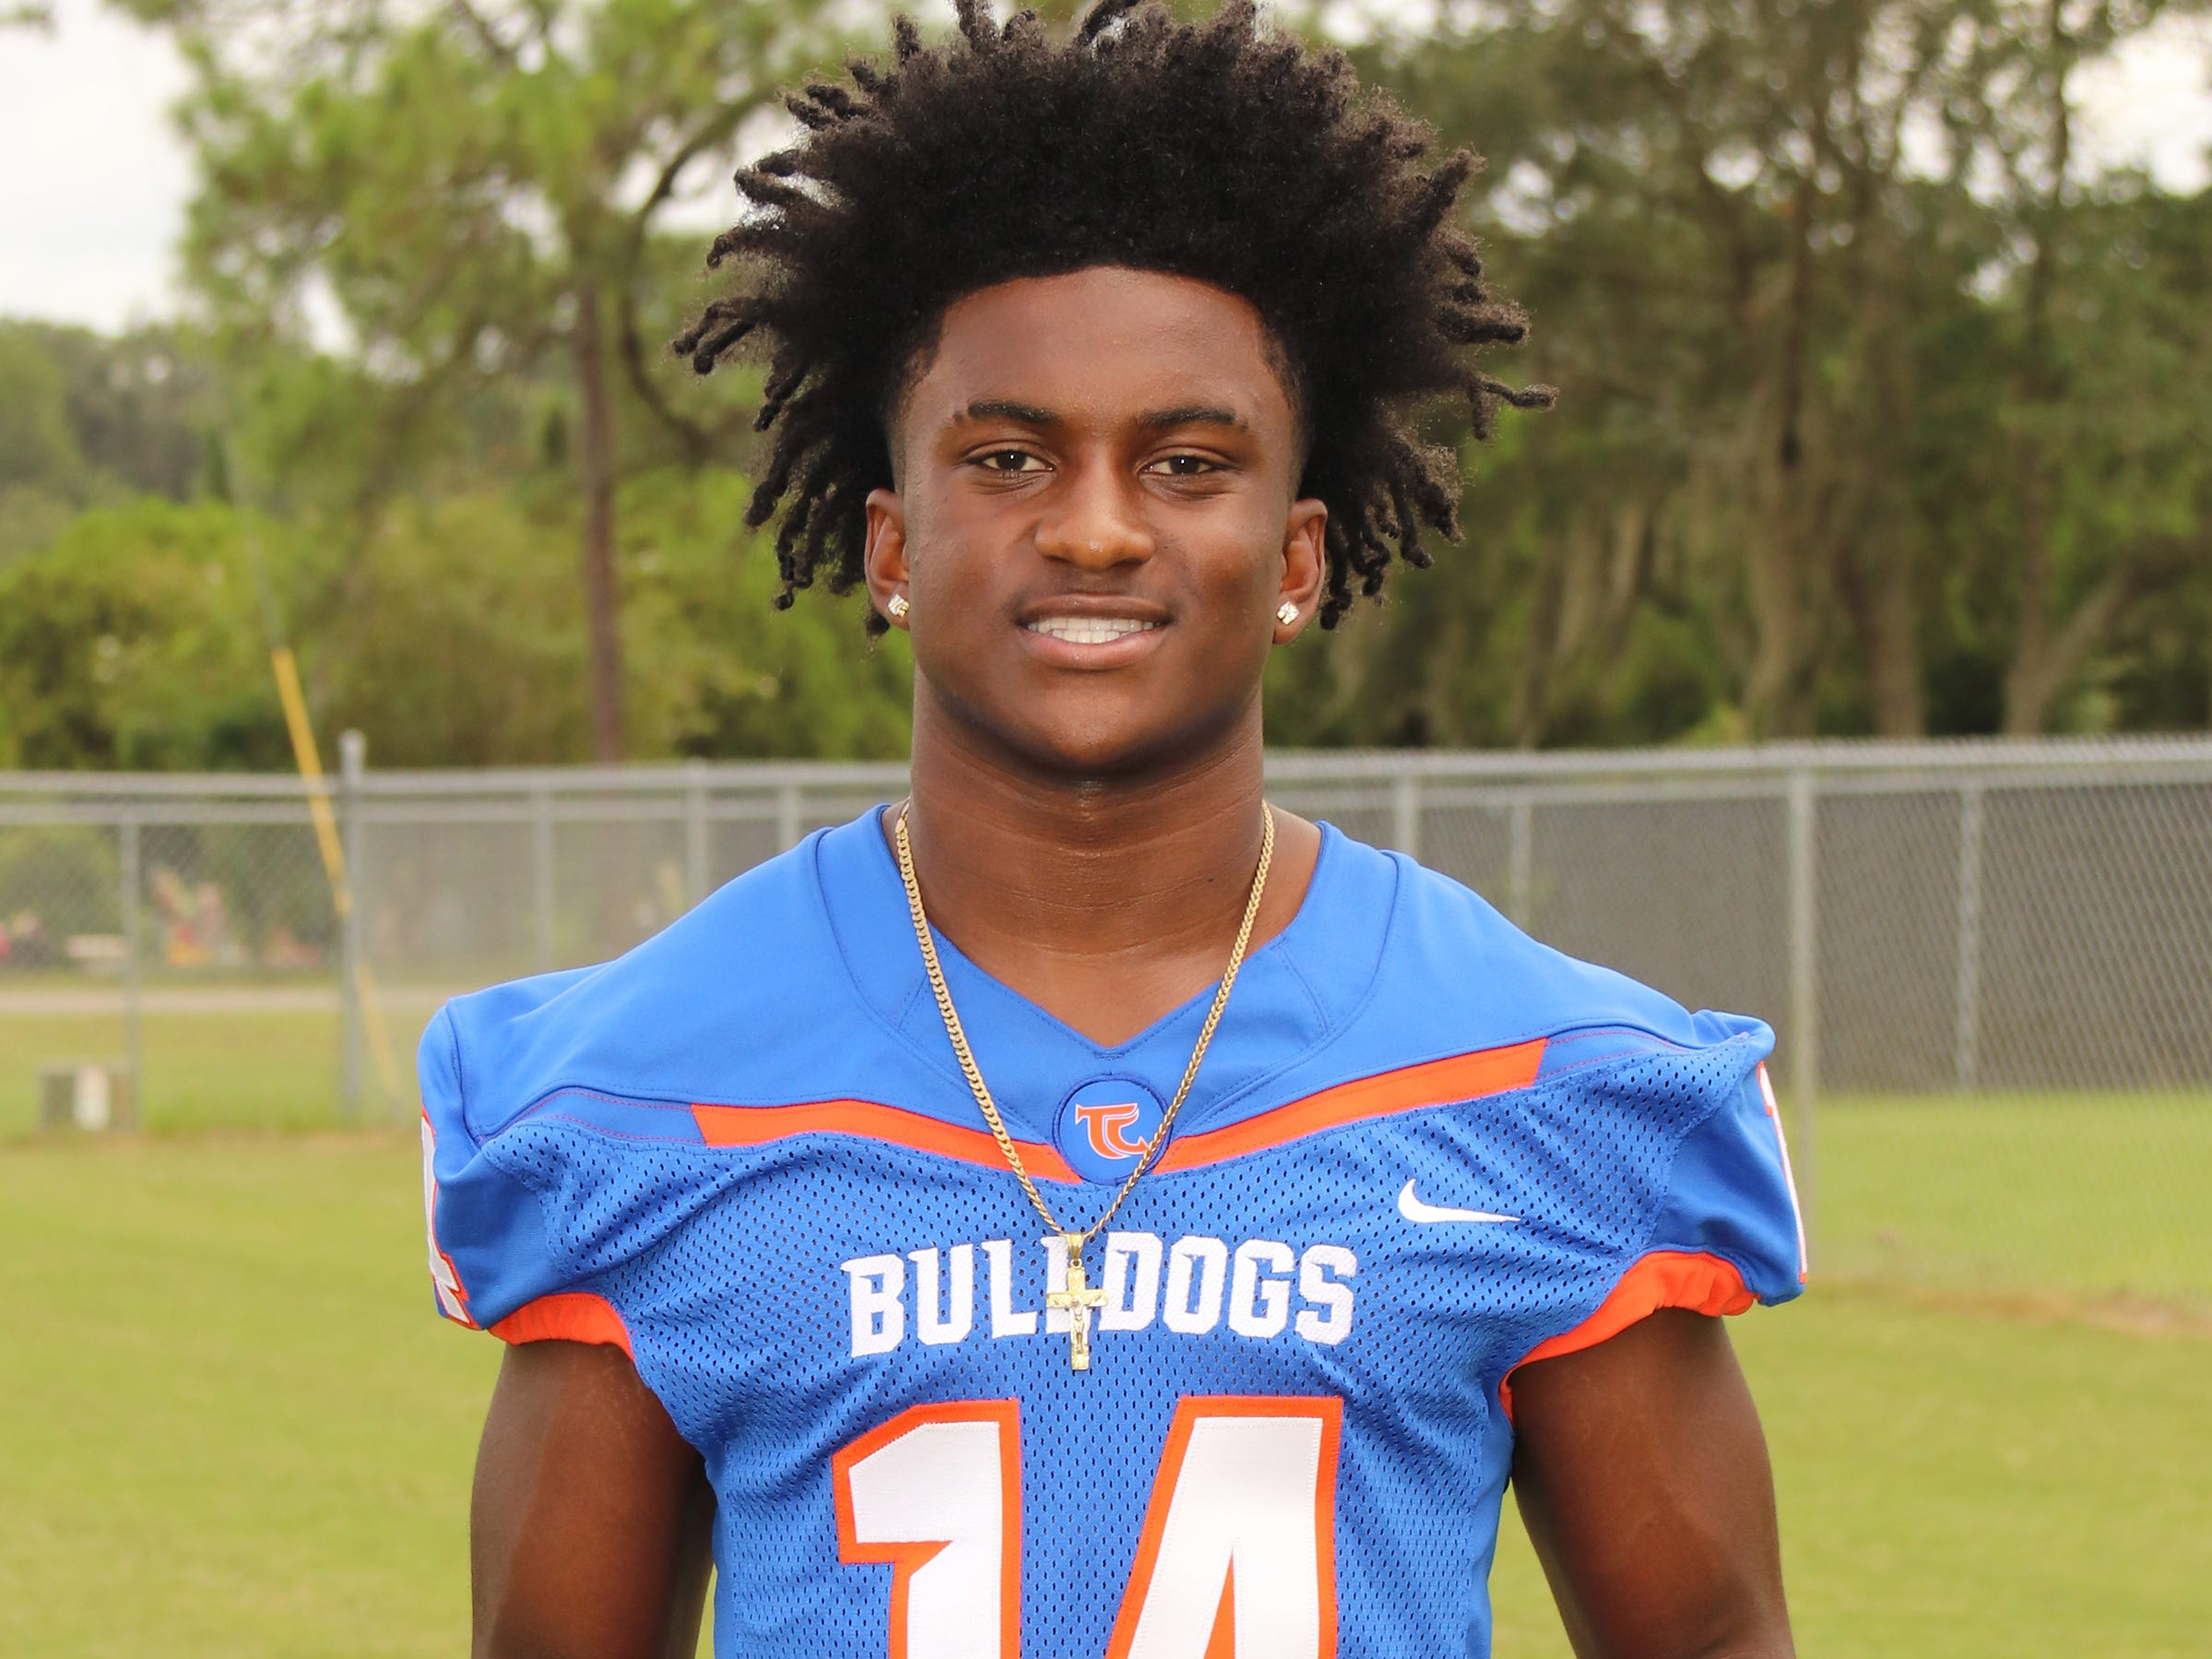 Taylor County sophomore athlete Robert Glanton was named to the 2018 All-Big Bend football first team for utility defense. STATS: 32 rec, 525 yards, 3 TD; 636 pass yards, 6 TD, 4 INT; 399 rush yards, 2 TD; 69 T, INT, 7 PB; FF; PR TD, KR TD